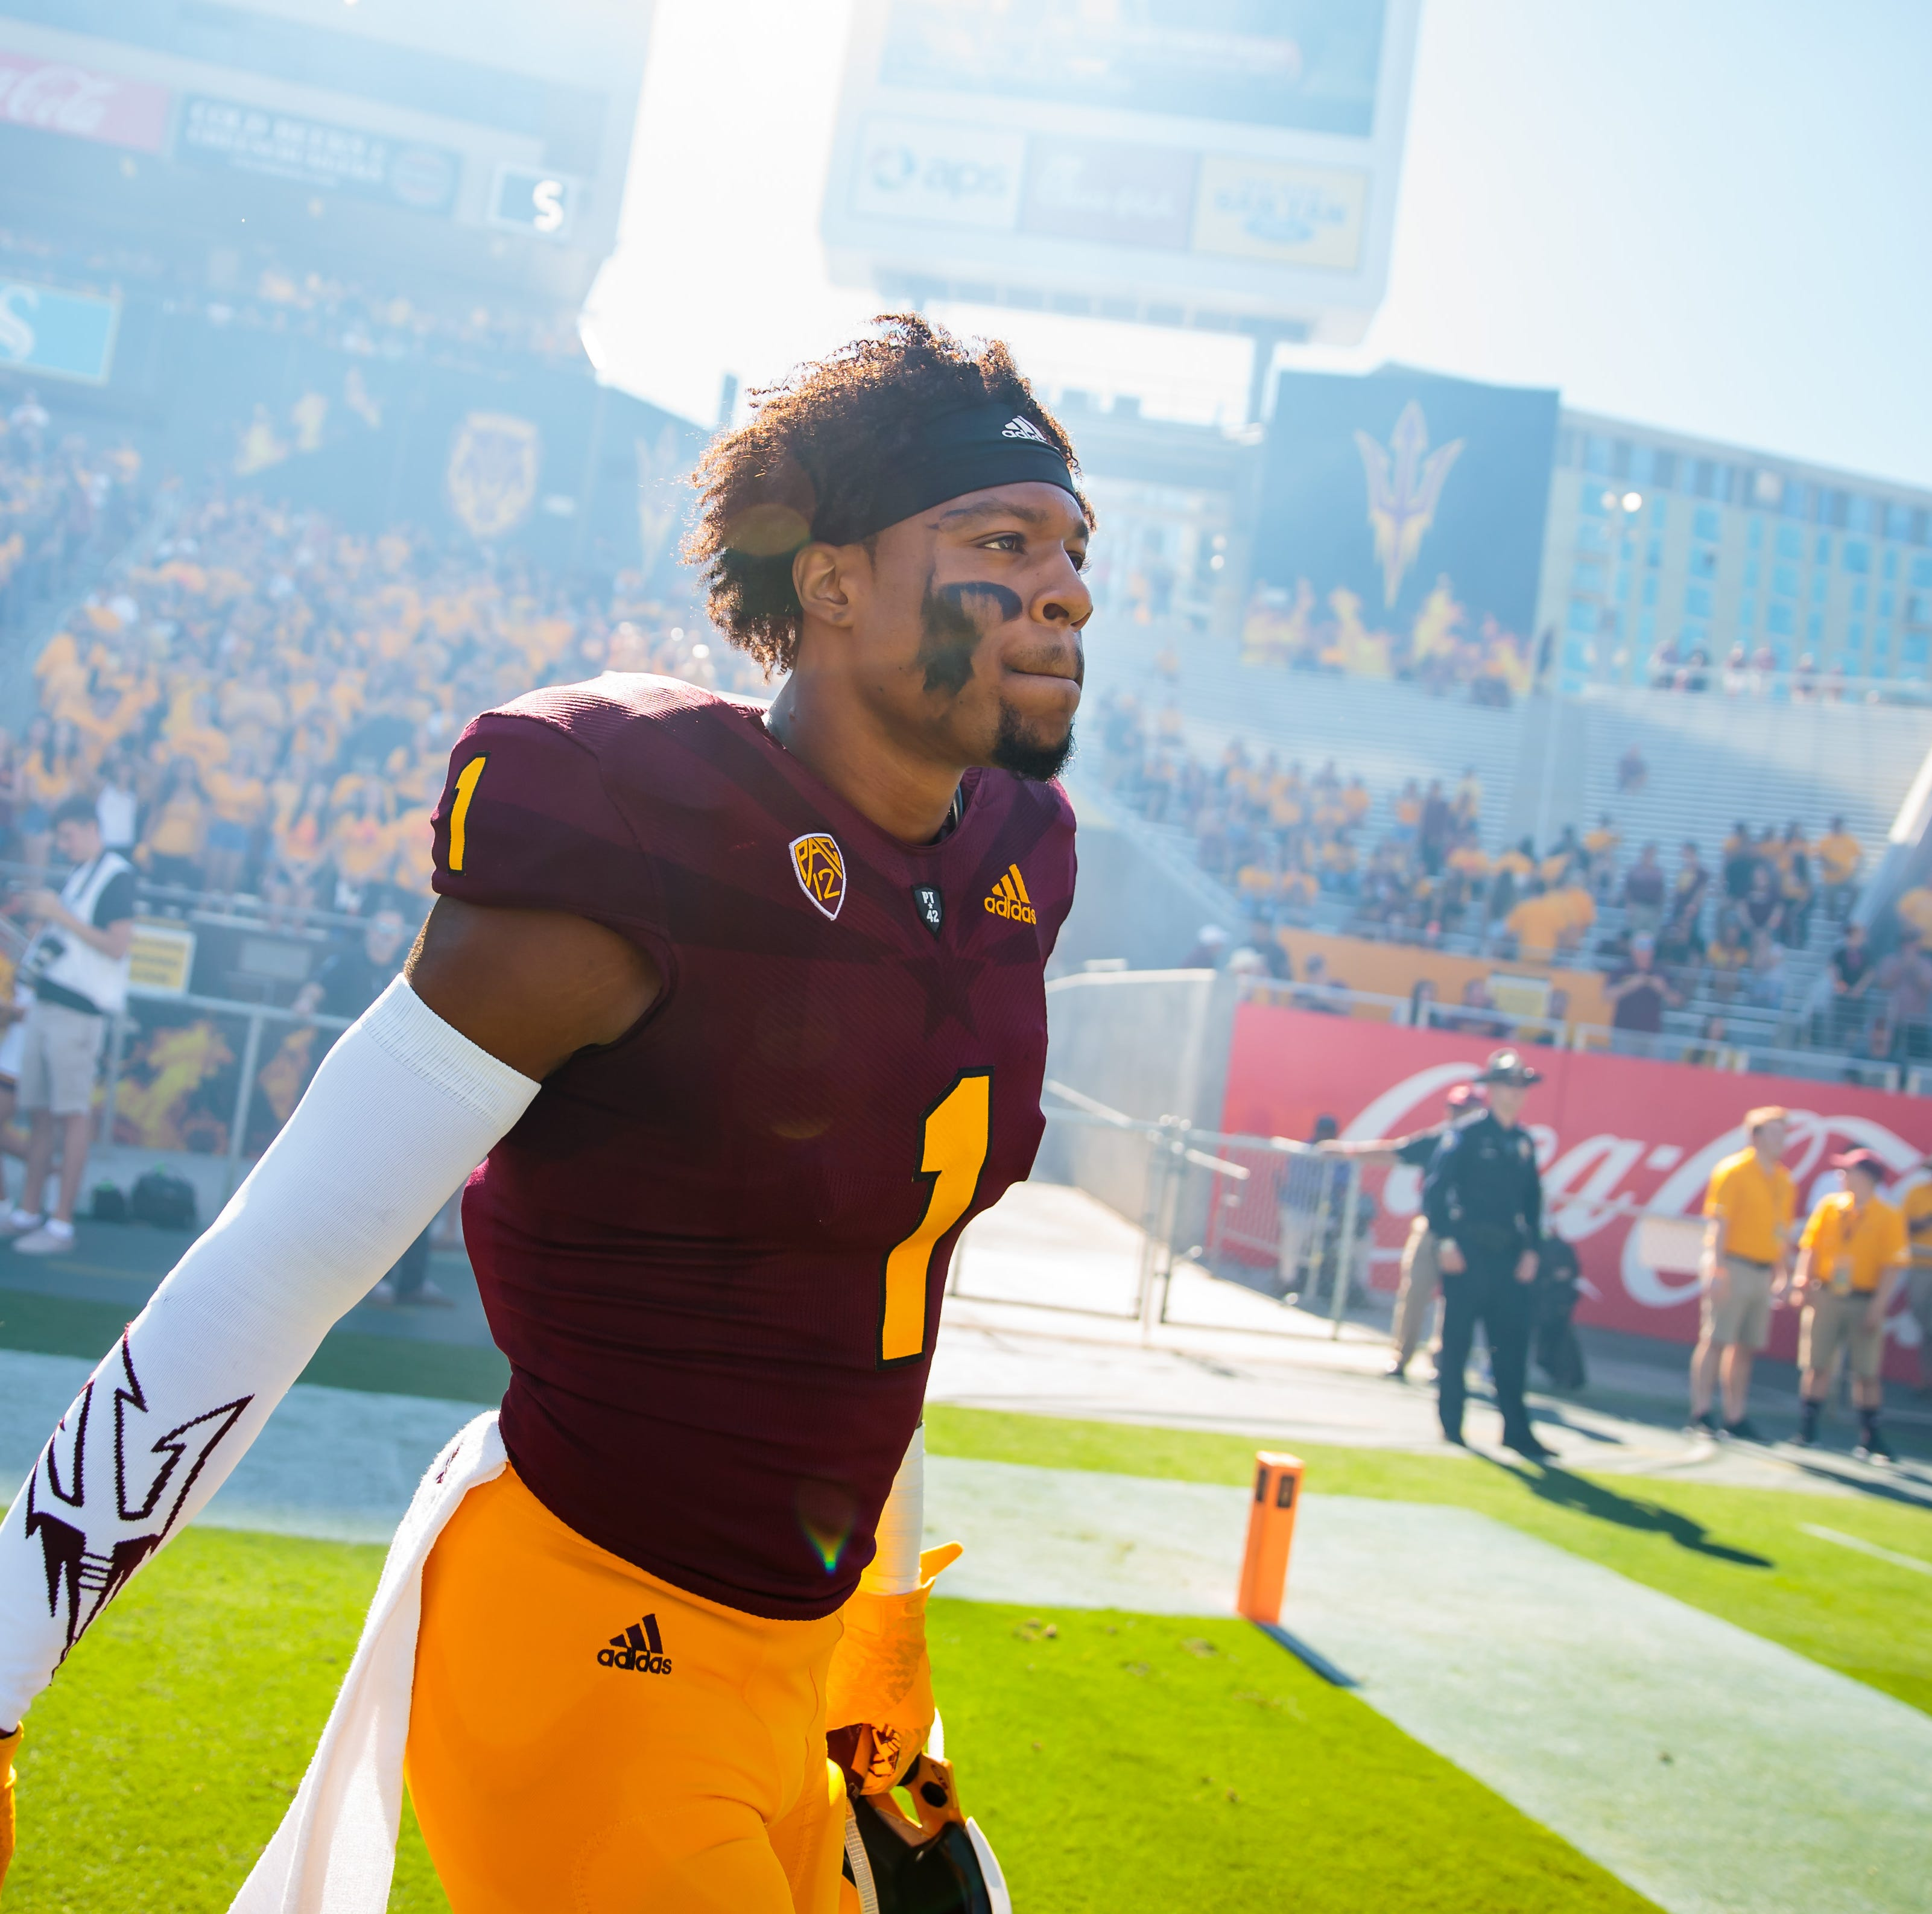 NFL mock draft: ASU football's N'Keal Harry elevating 2019 NFL draft stock